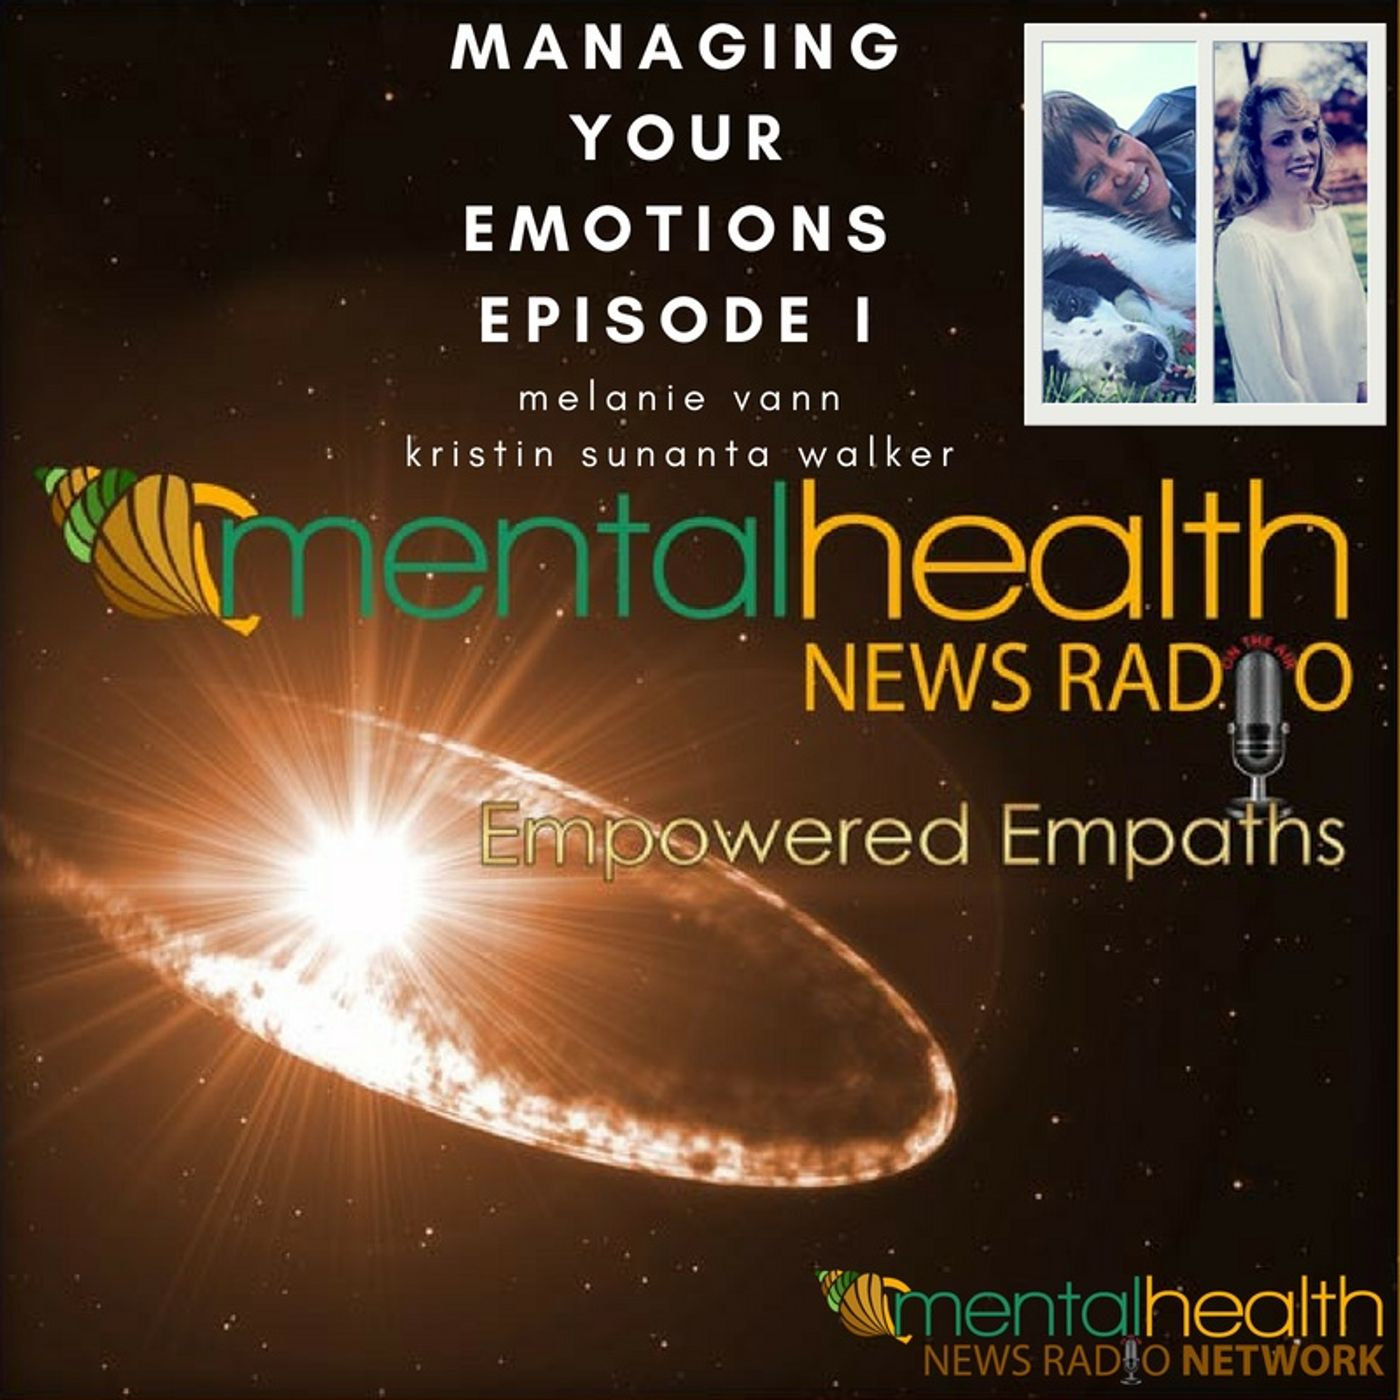 Mental Health News Radio - Empowered Empaths: Managing Your Emotions Part I